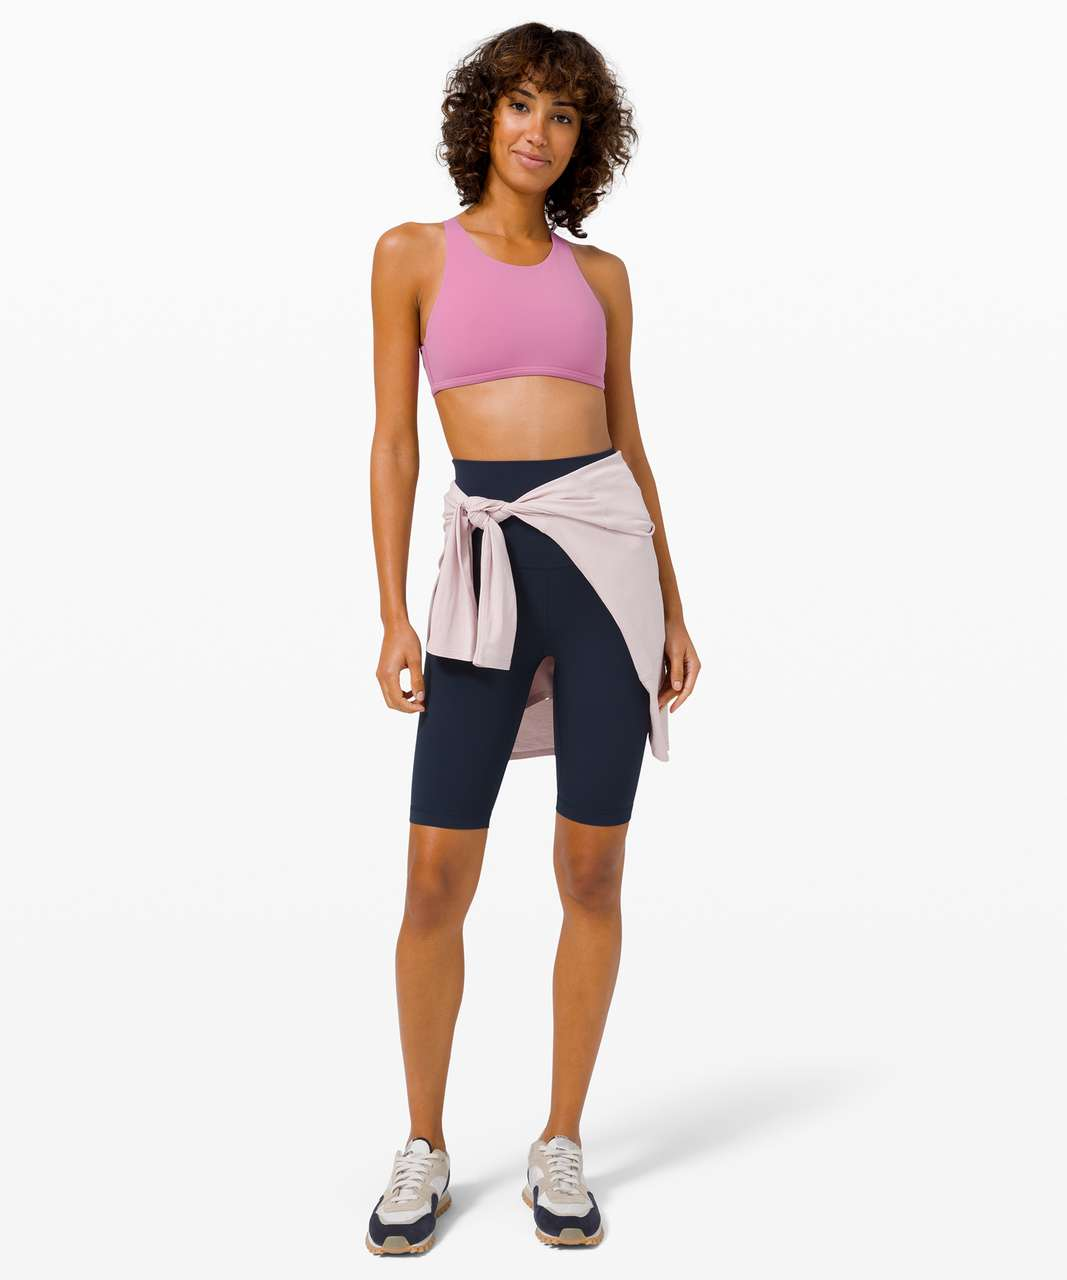 Lululemon Free To Be Bra Wild High Neck*Light Support, A/B Cup (Online Only) - Magenta Glow